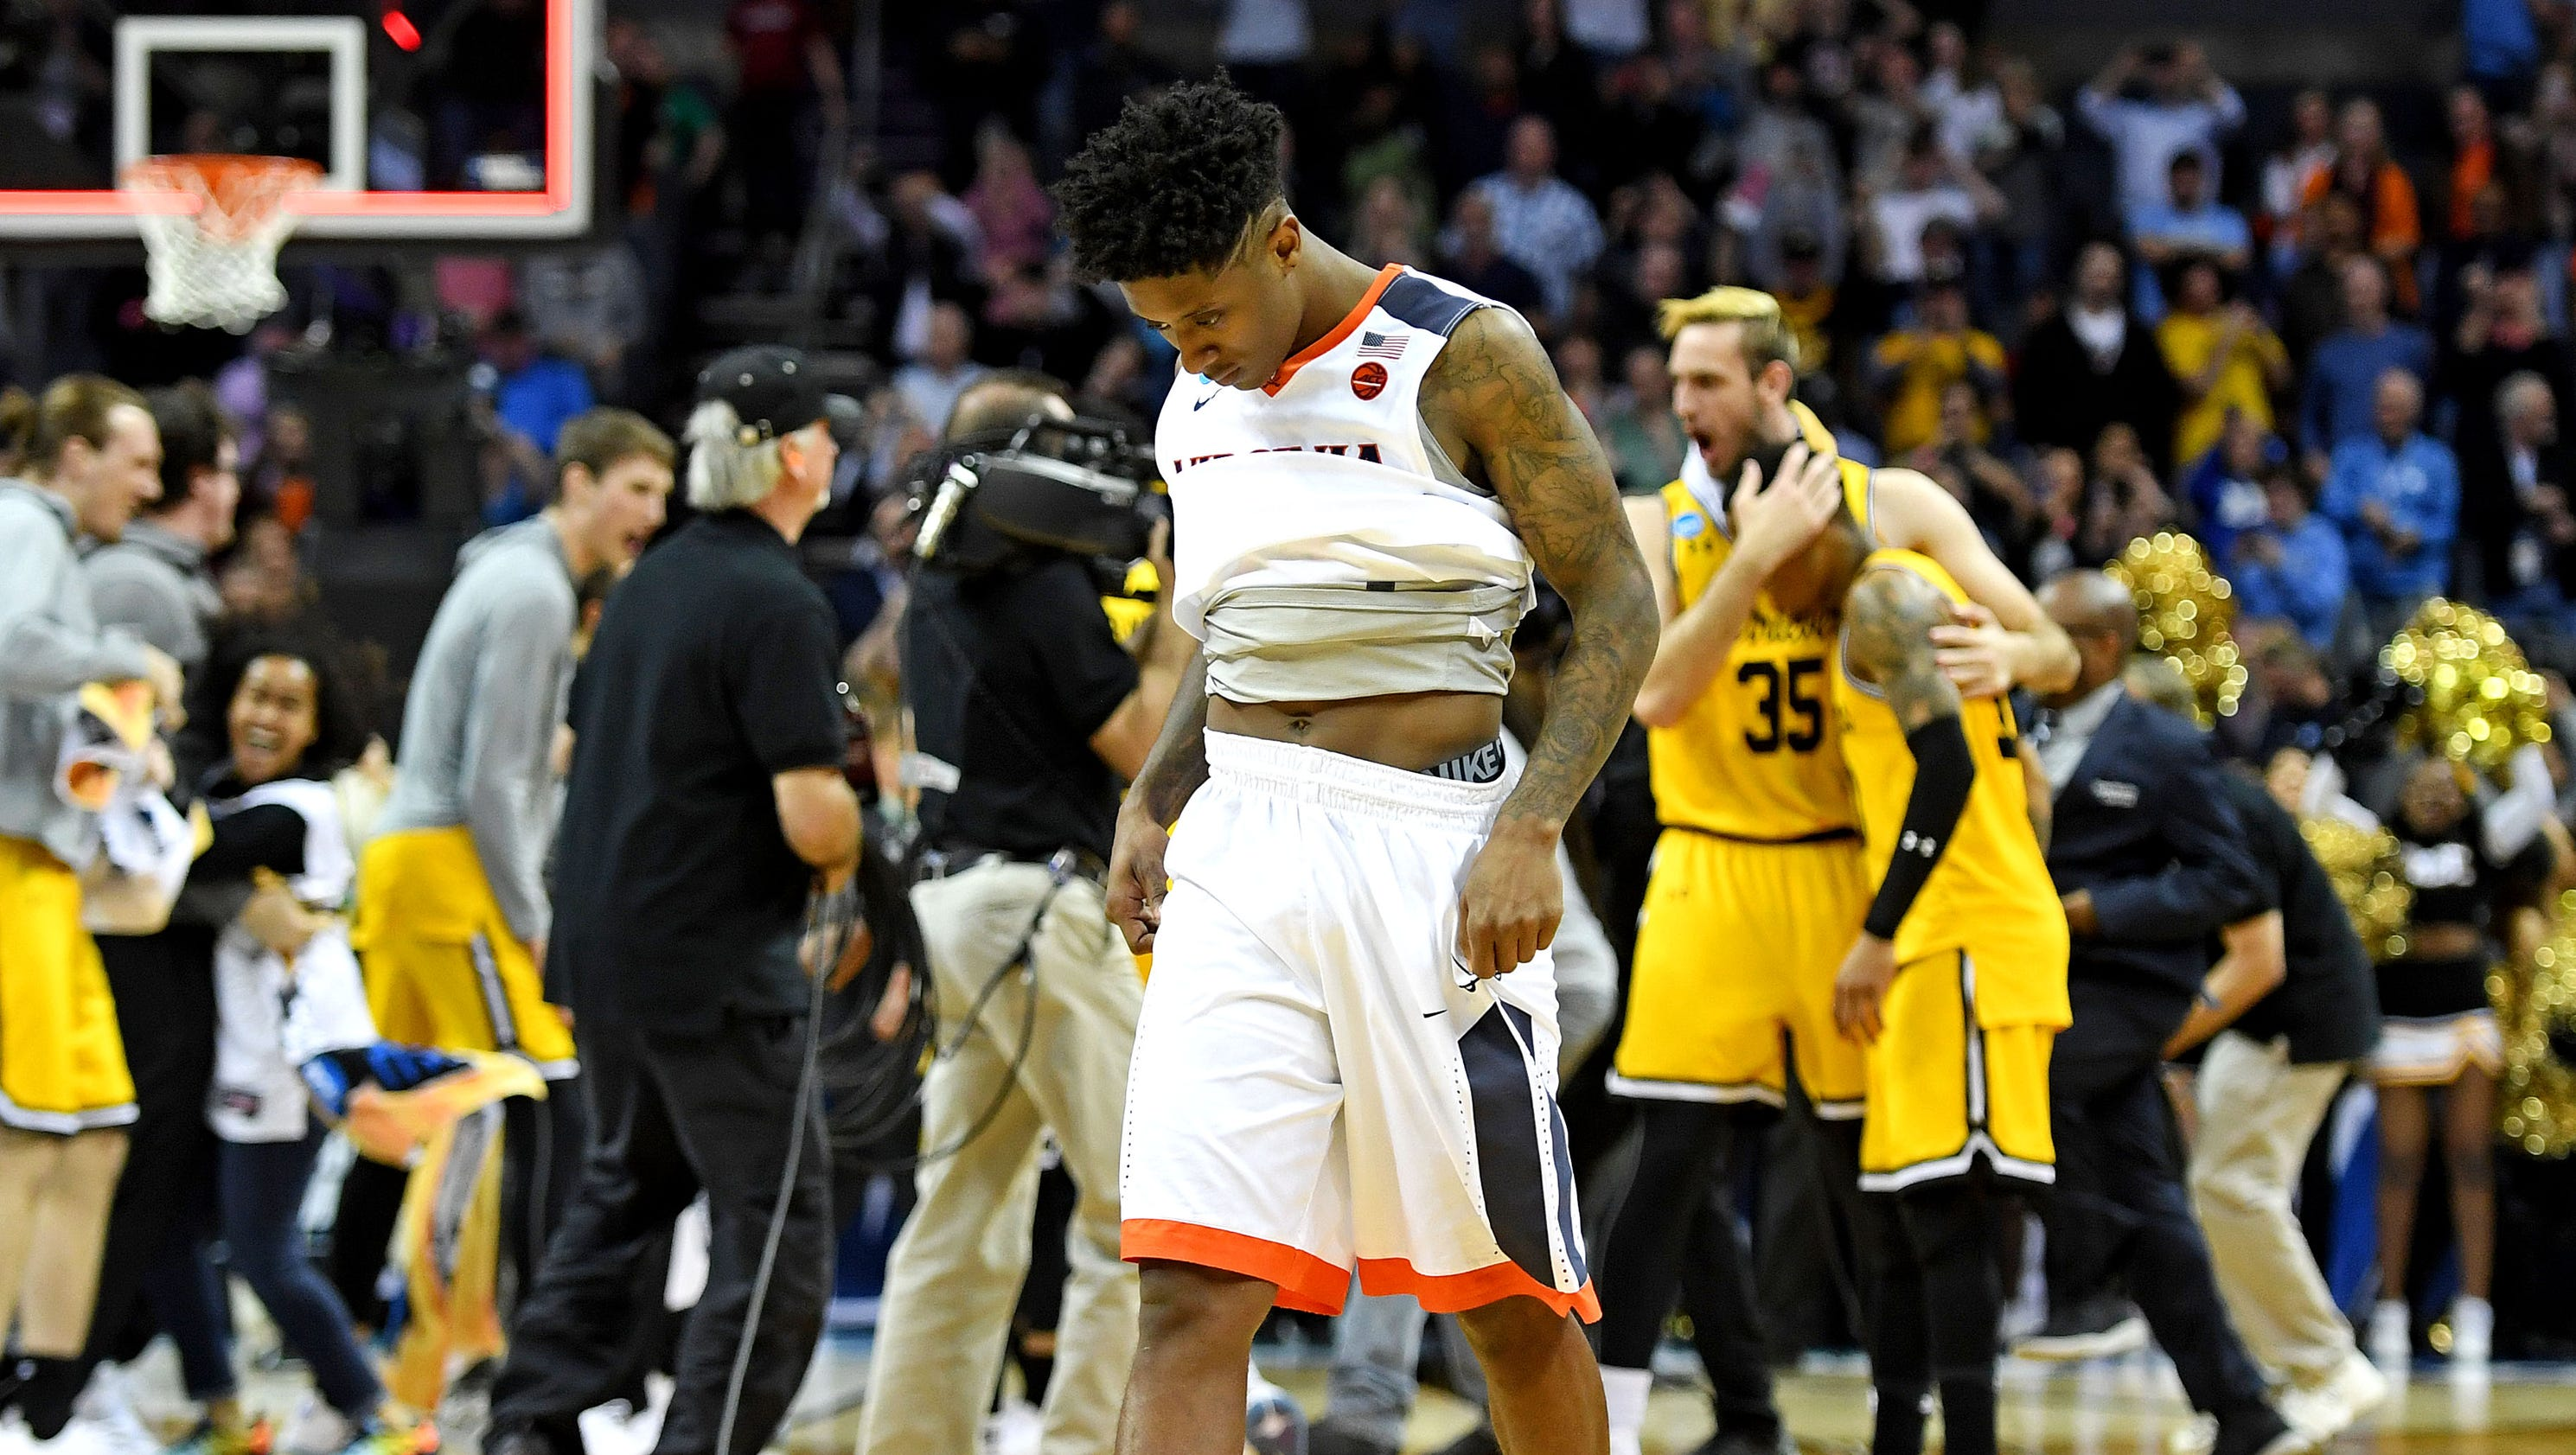 UPDATE NCAA stunner as No 16 seed makes history knocking out No 1